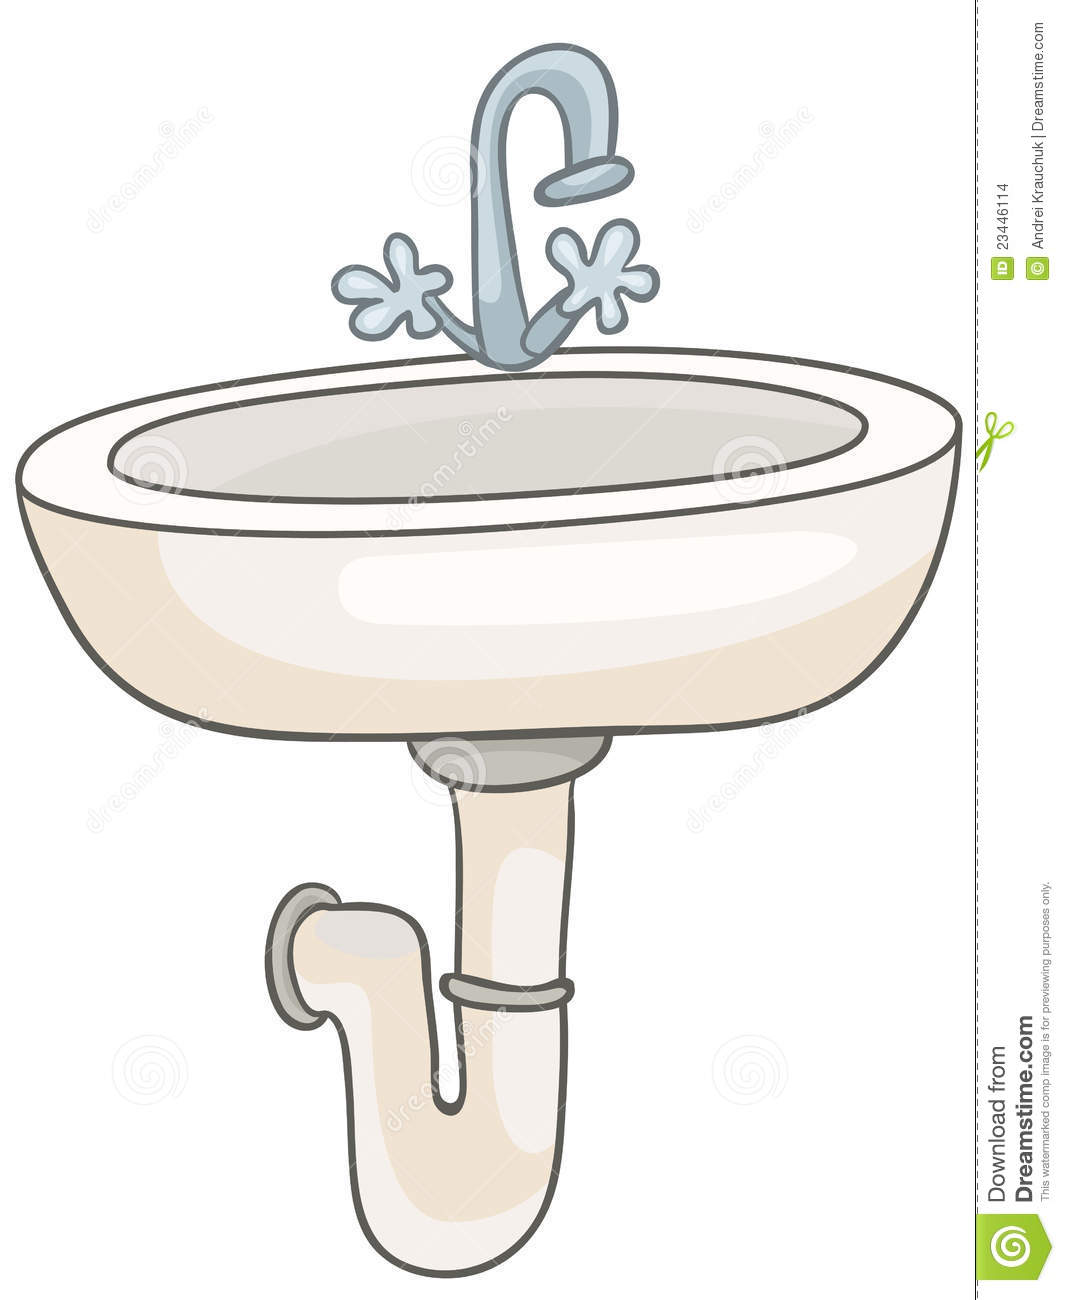 Sink clipart image free stock 51+ Sink Clipart | ClipartLook image free stock